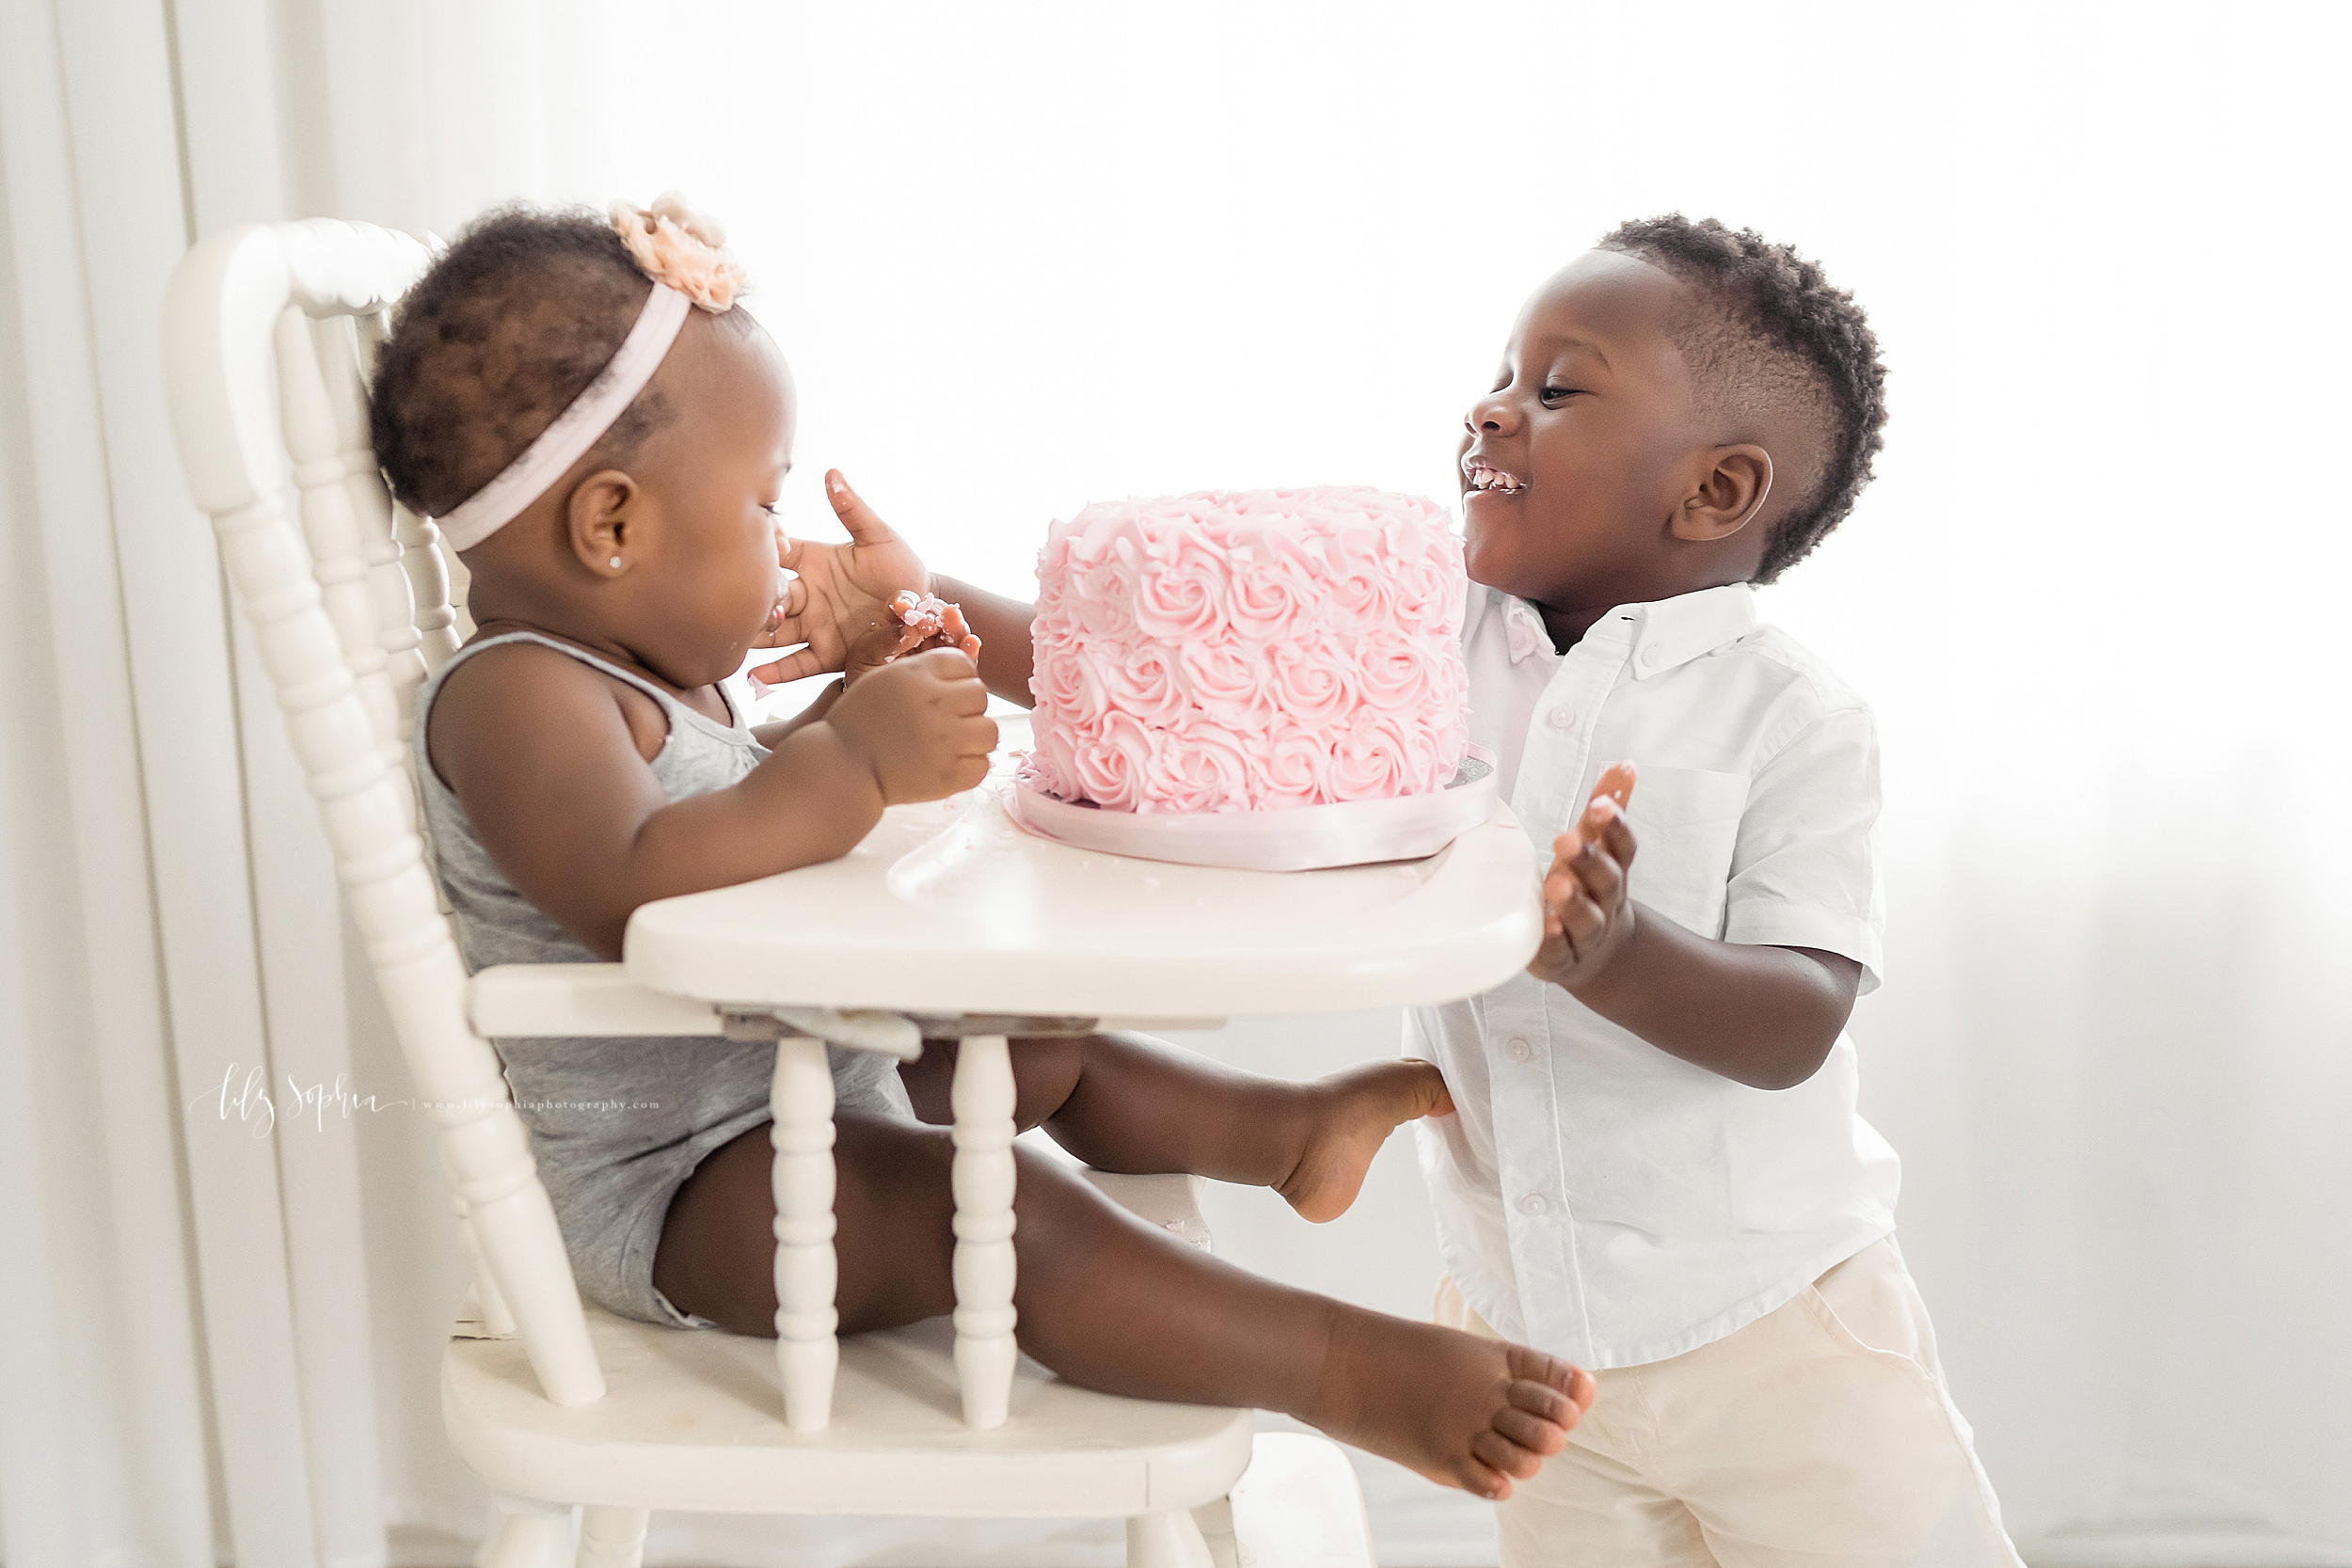 Family photo of an African-American brother helping his one year old sister taste the icing of her birthday cake as she sits in an antique high chair in an Atlanta natural light studio.